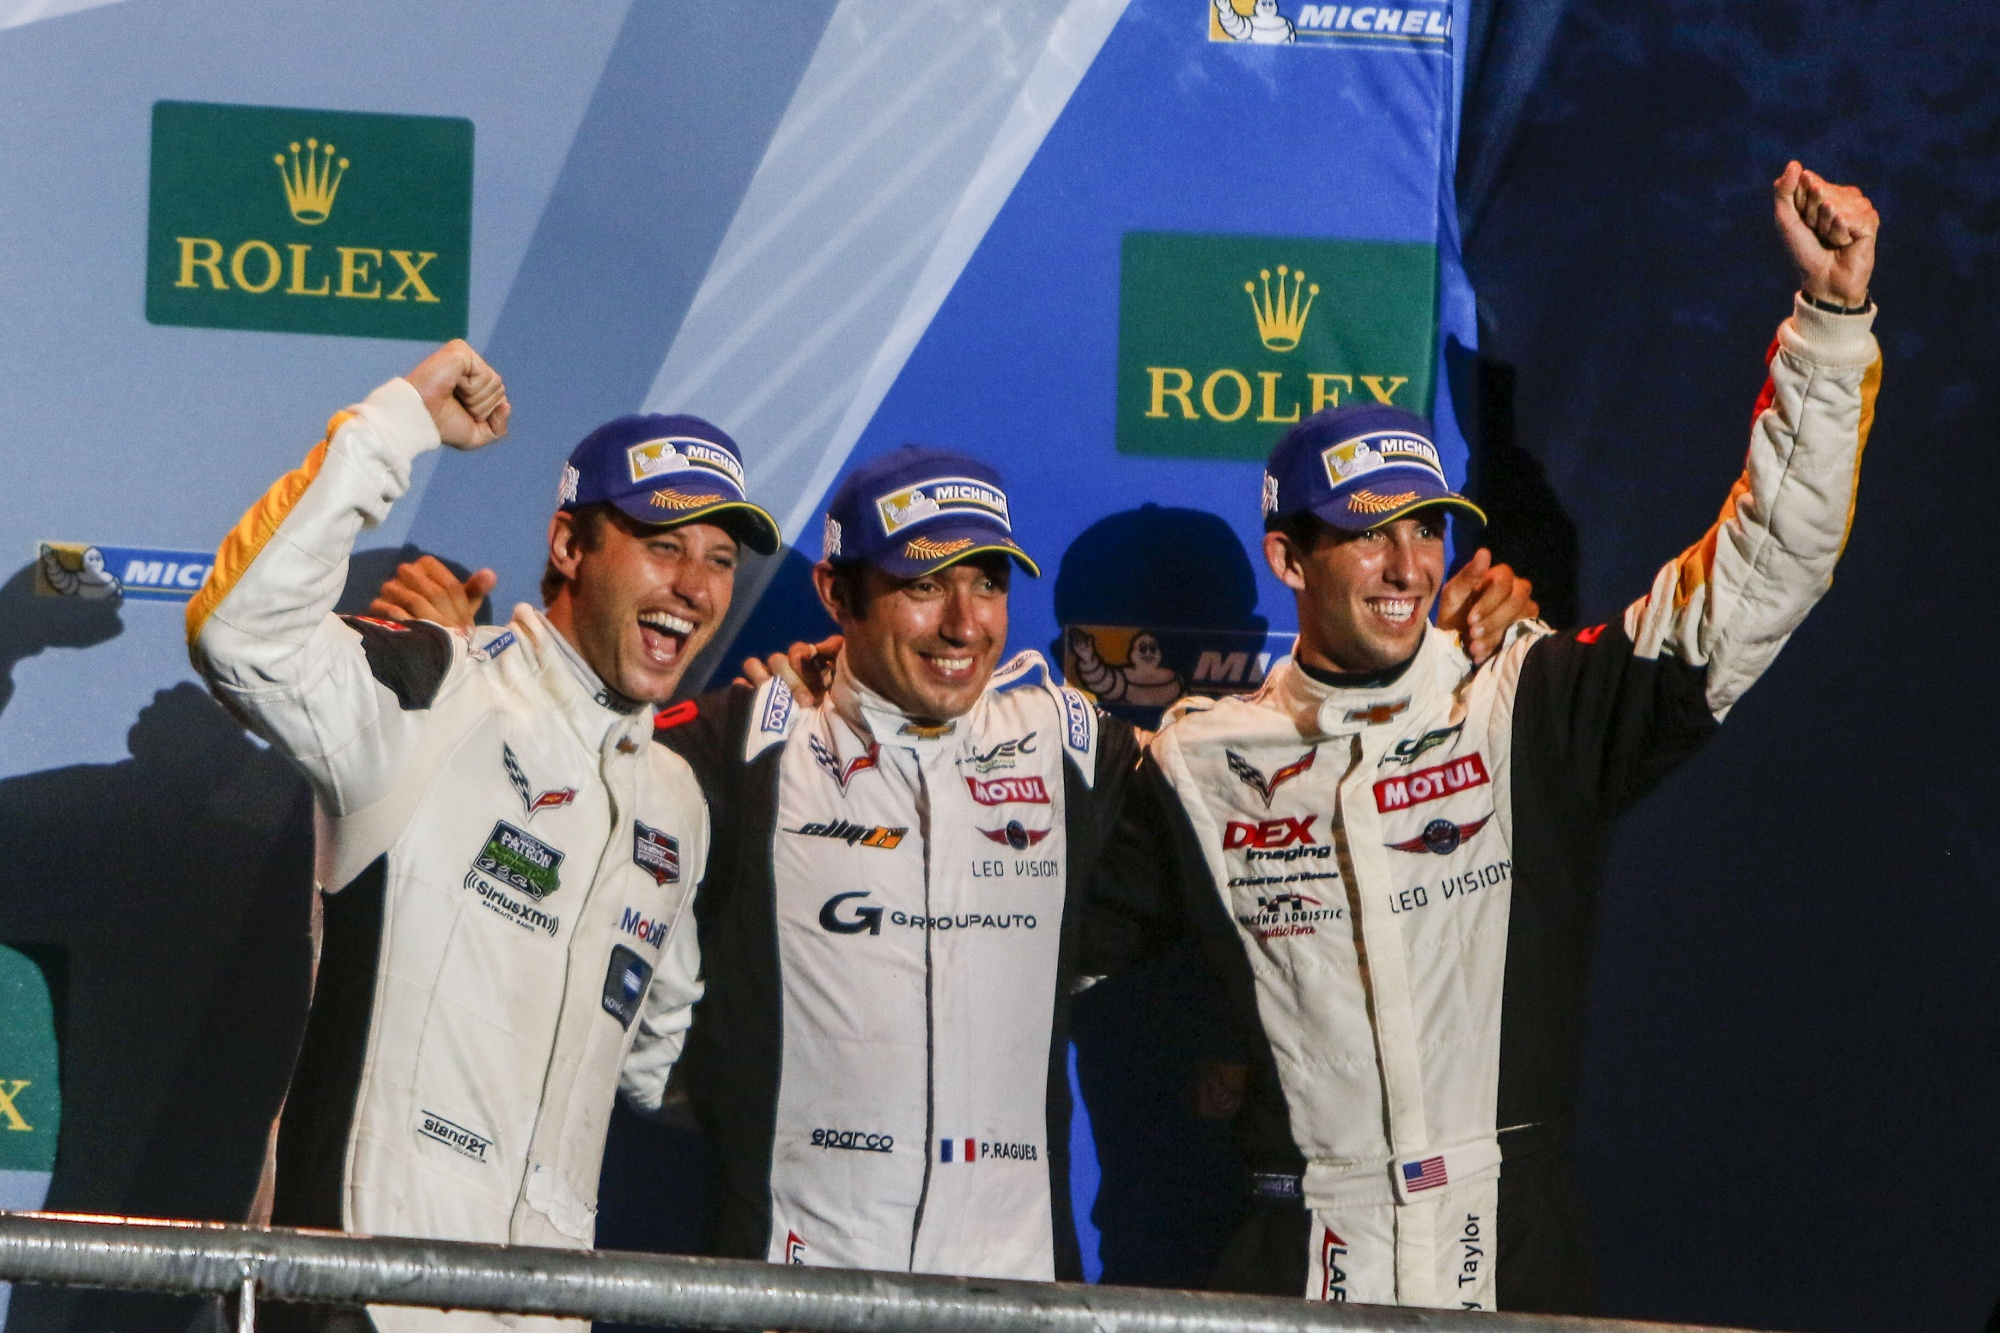 WEC – 6 hours of Circuit of the America Debrief